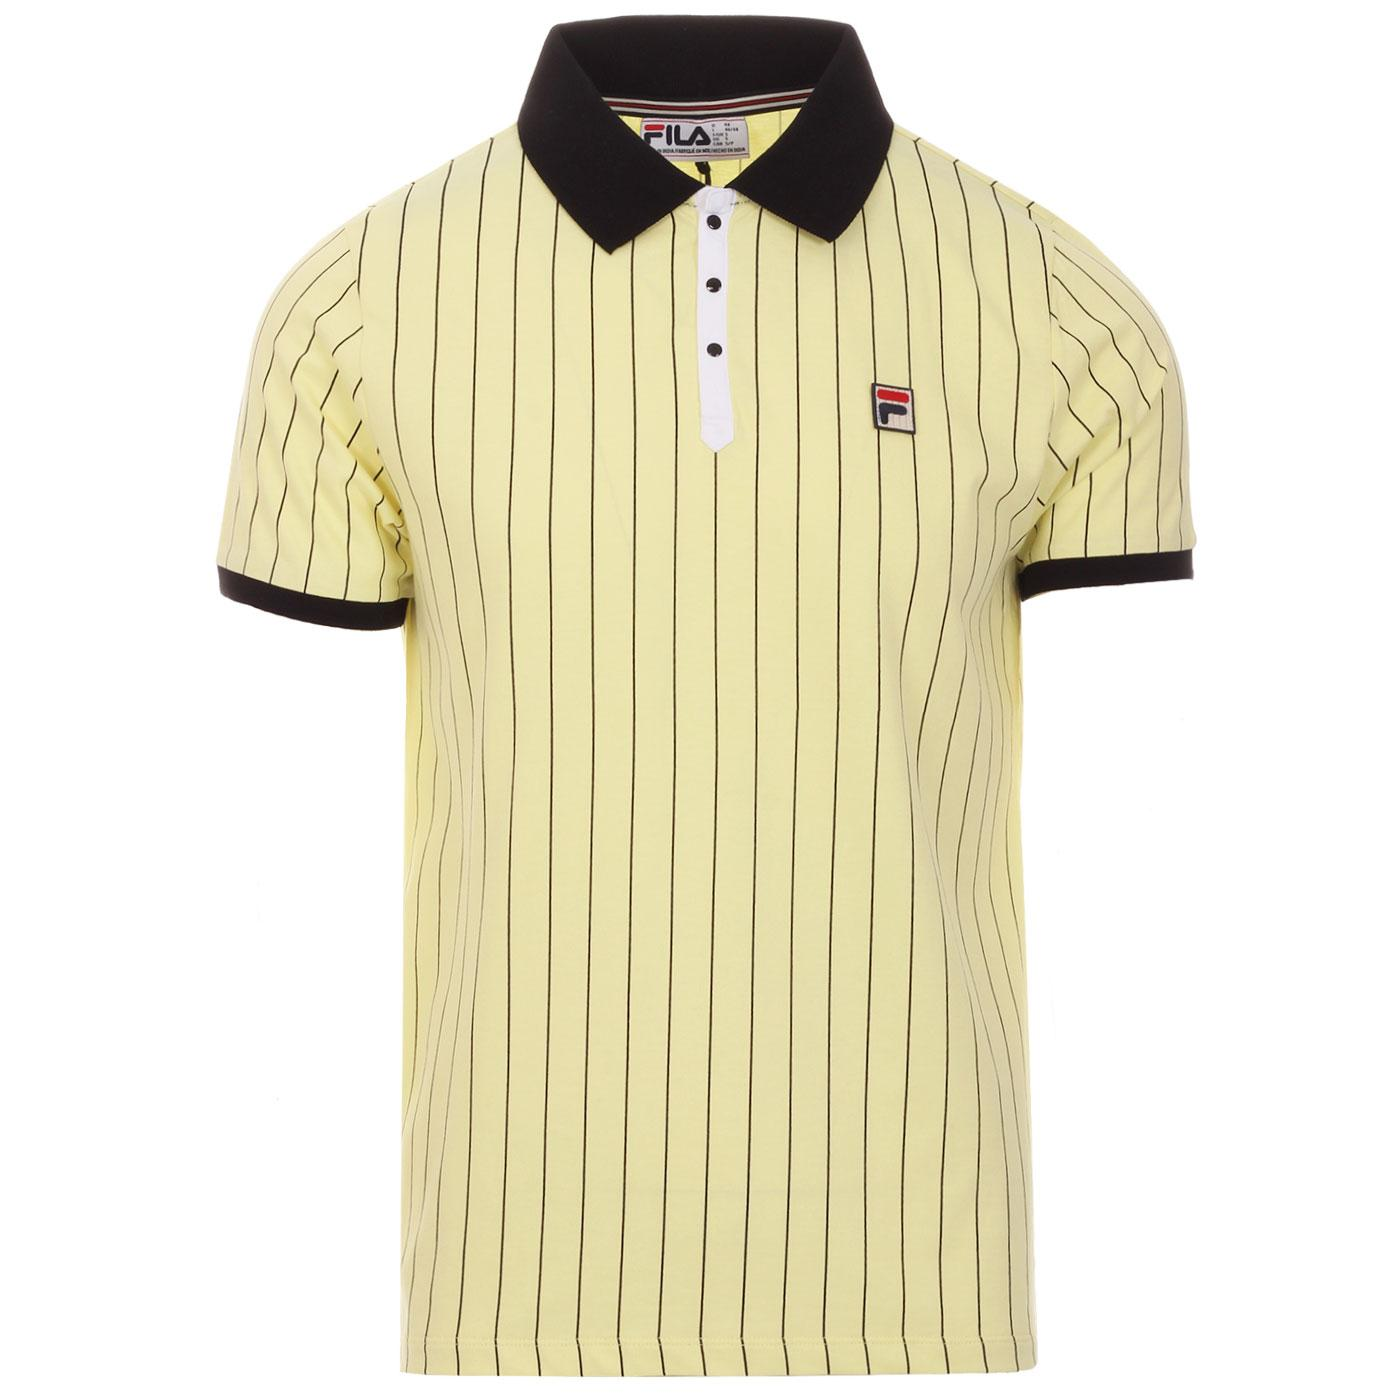 BB1 FILA VINTAGE Retro Borg Tennis Polo (Lemonade)